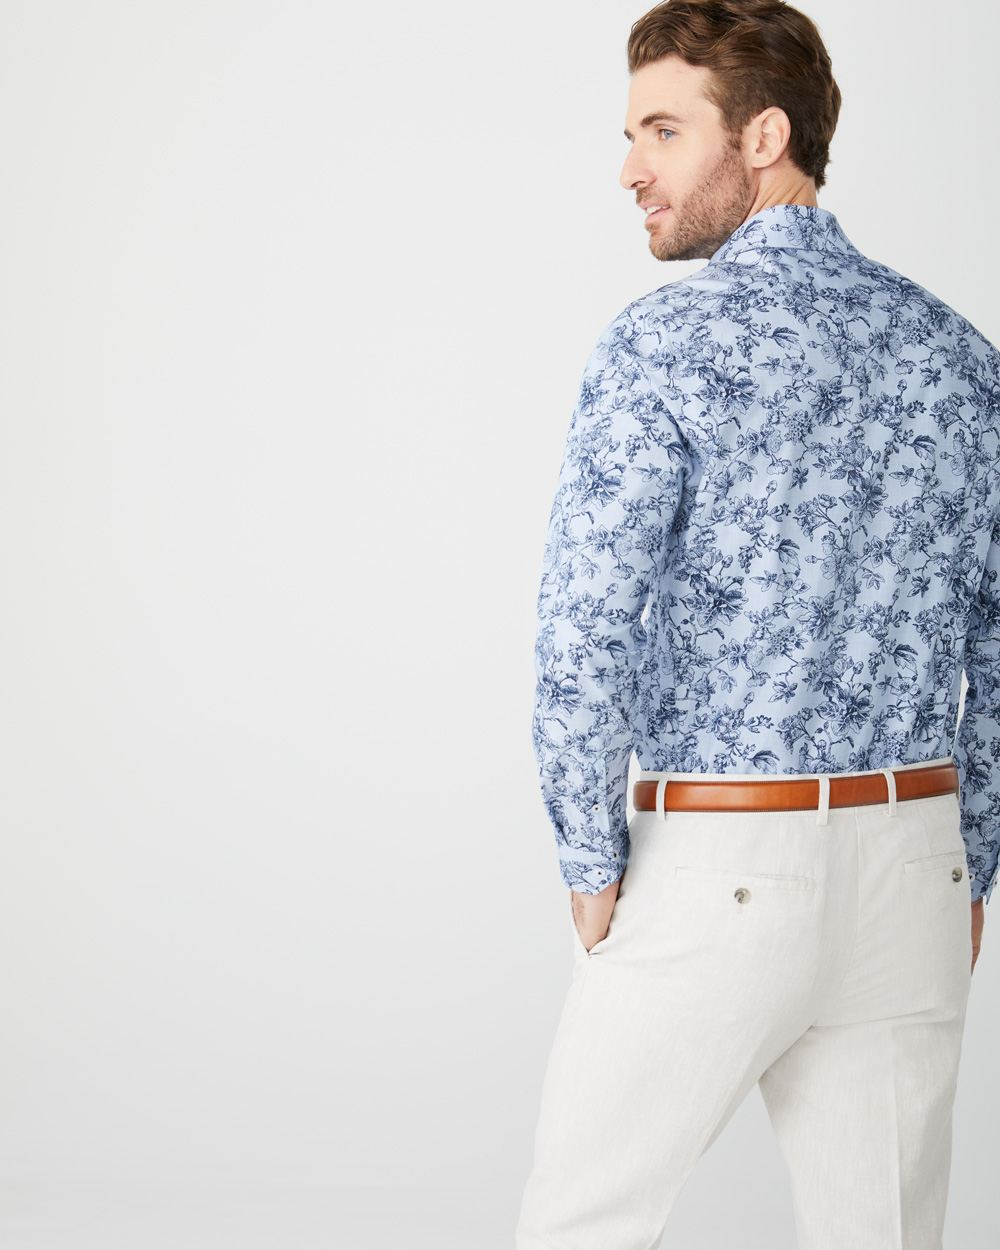 Tailored Fit large blue Floral Dress Shirt